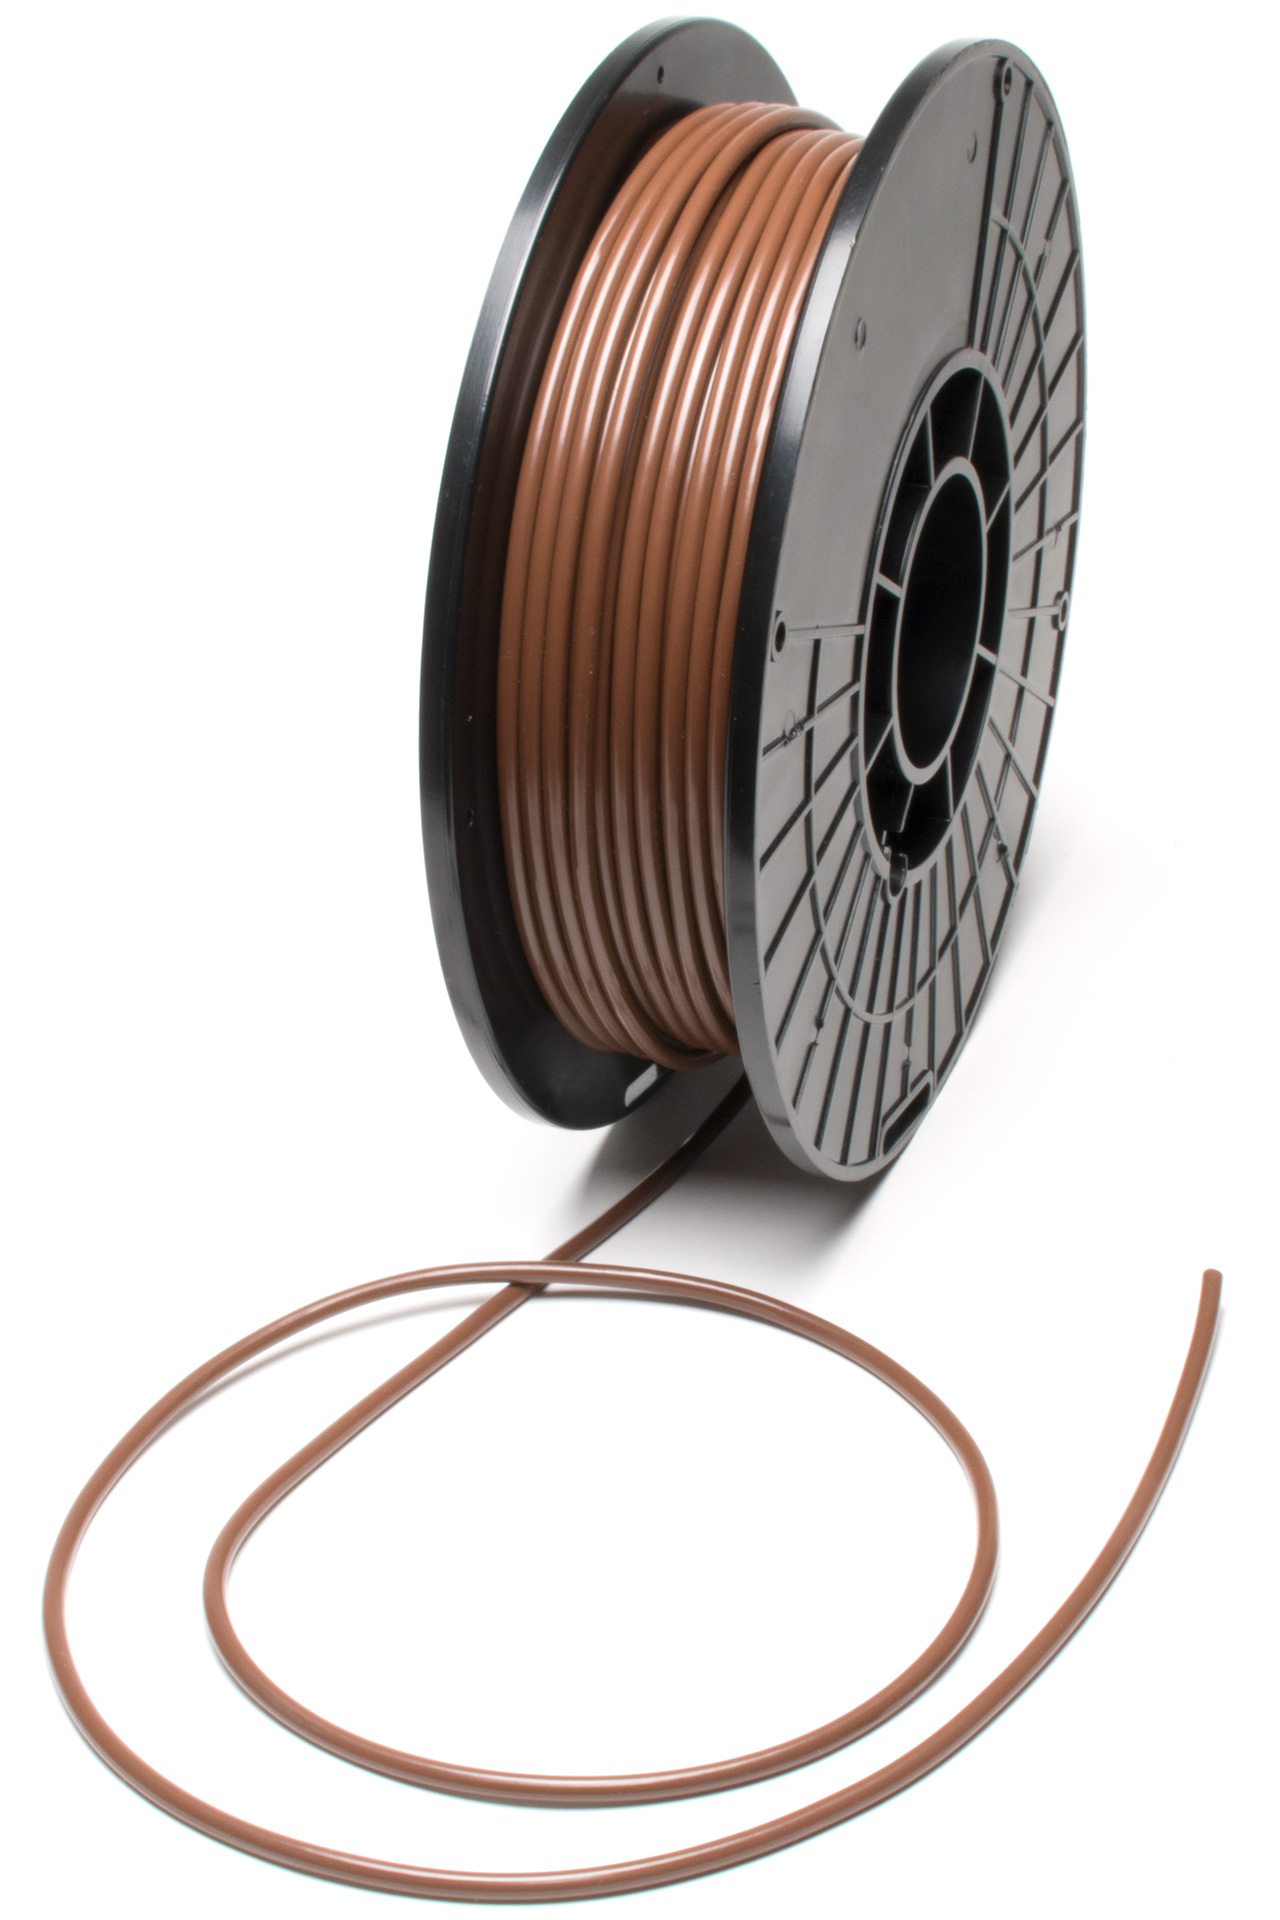 Transit welding cord in mahogany